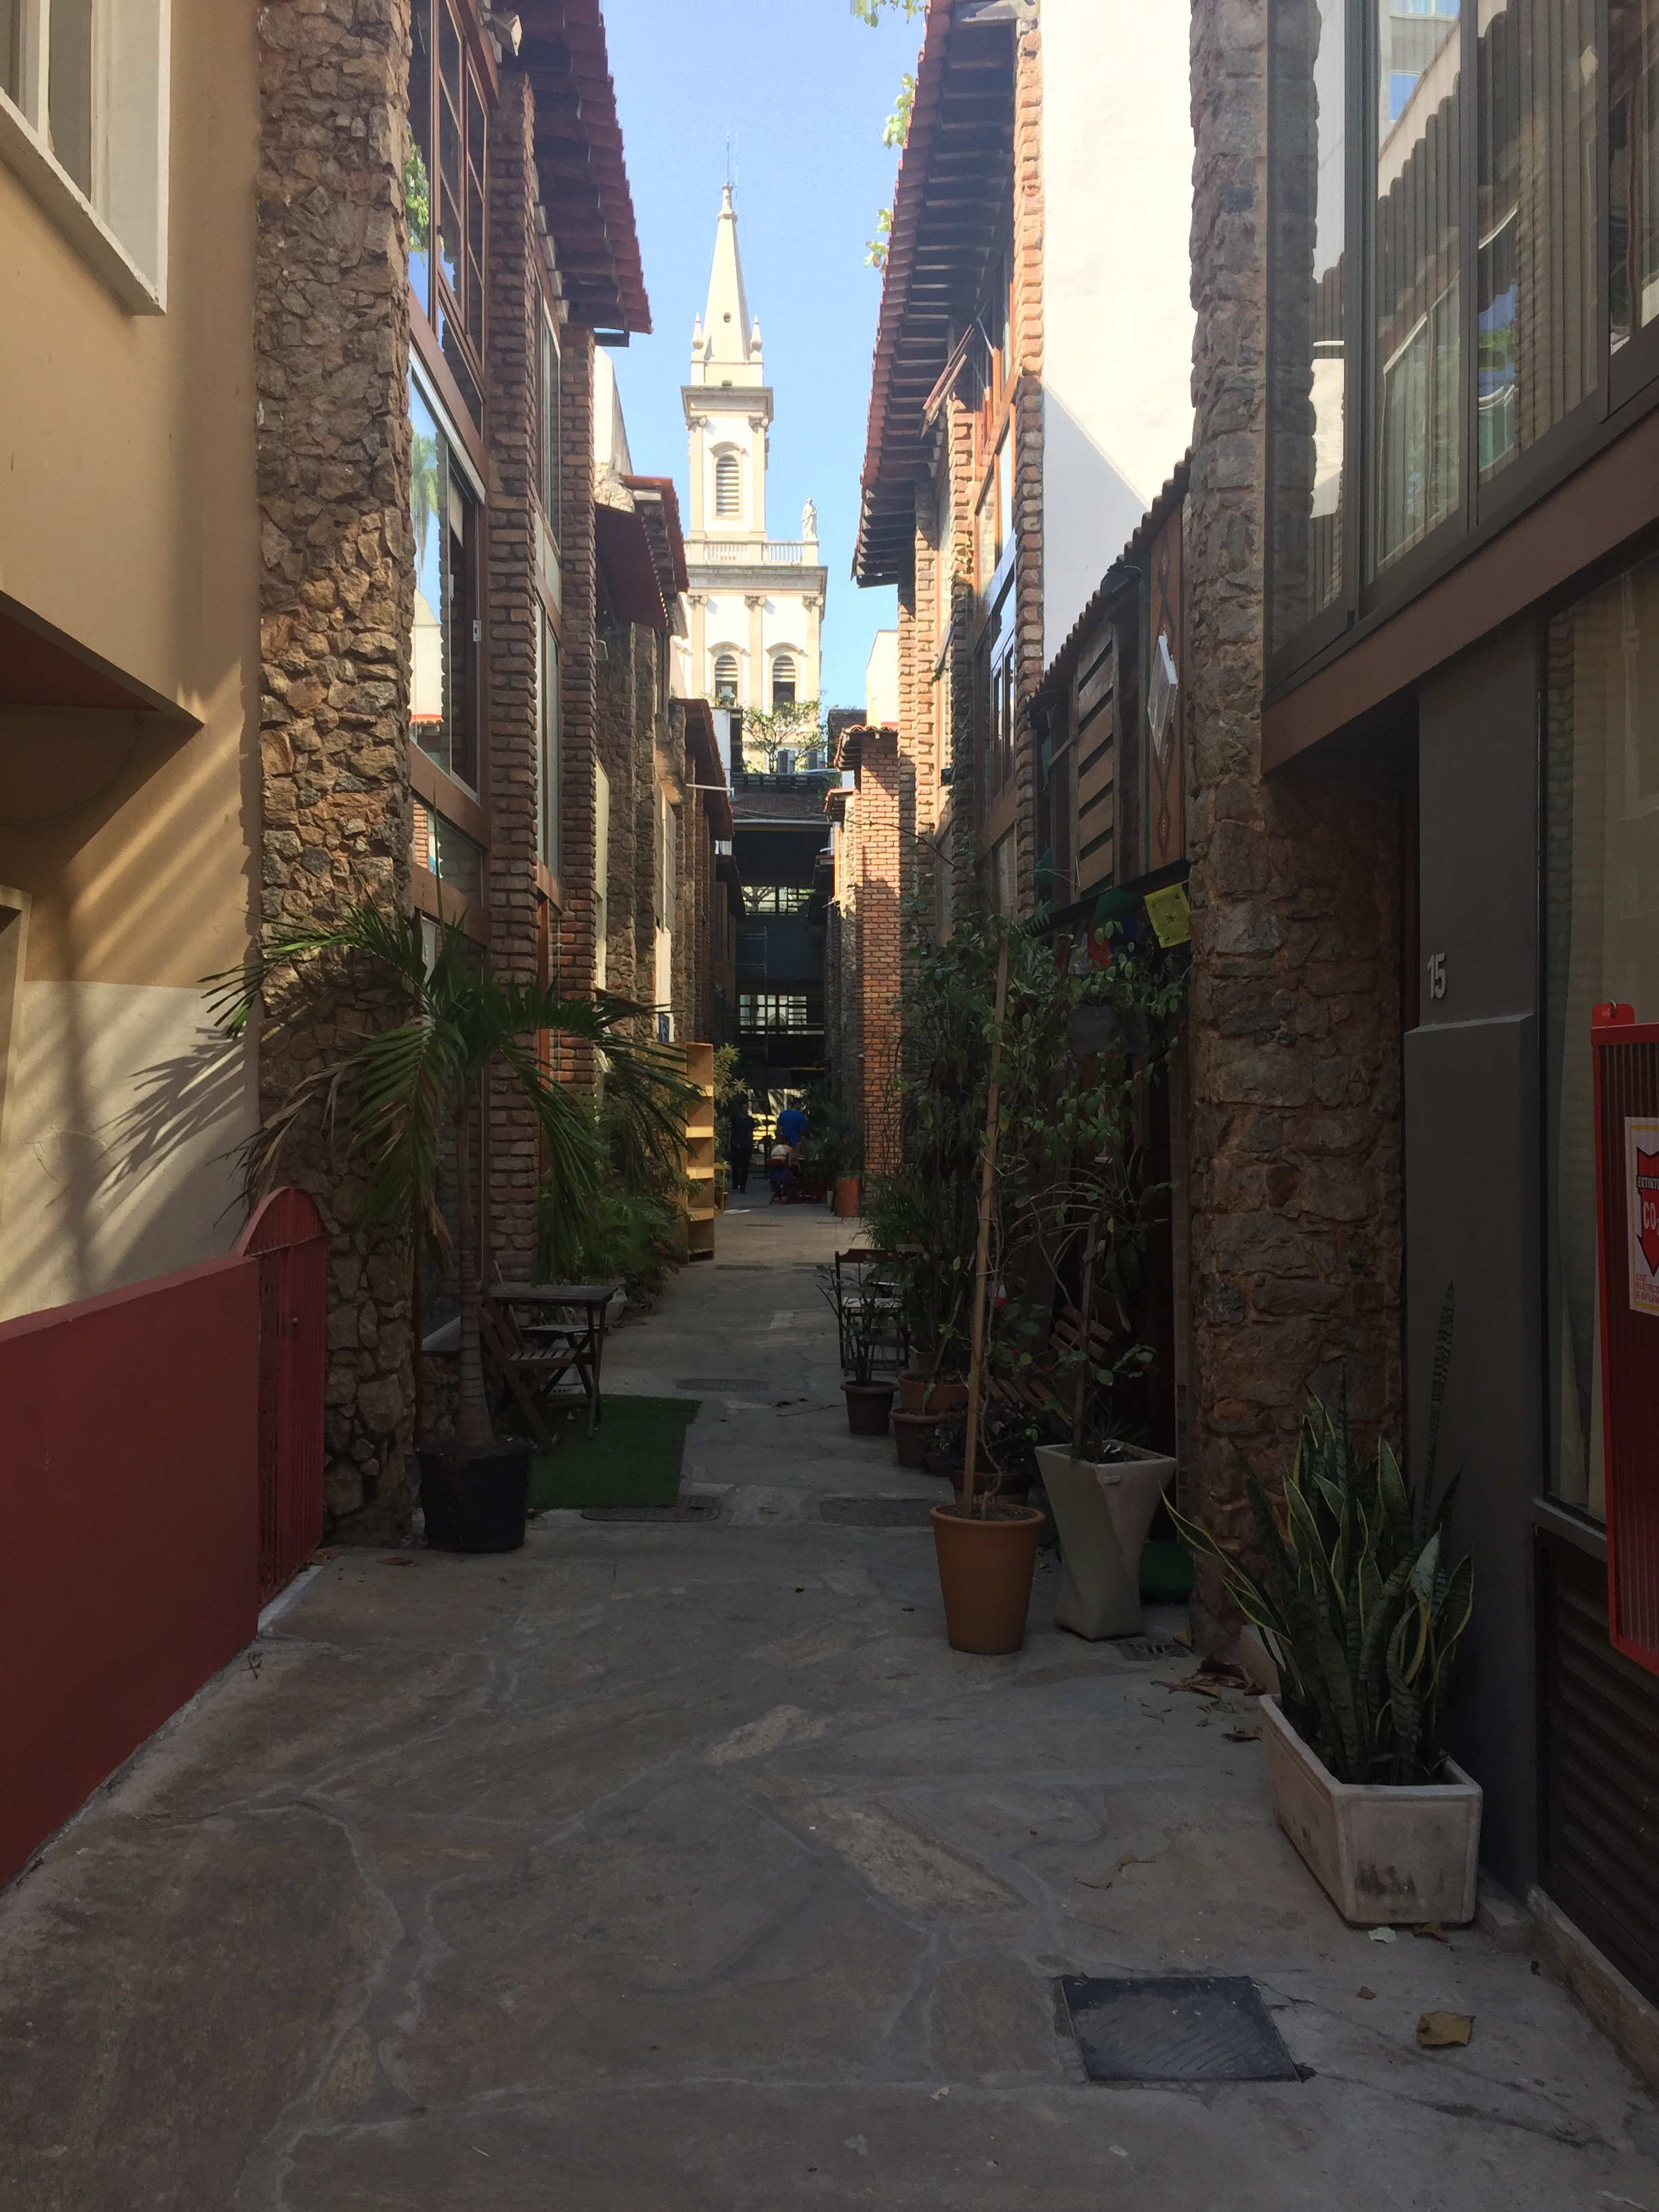 This alley shows off the small businesses, art galleries, and Cafe Secreto that juts out of it